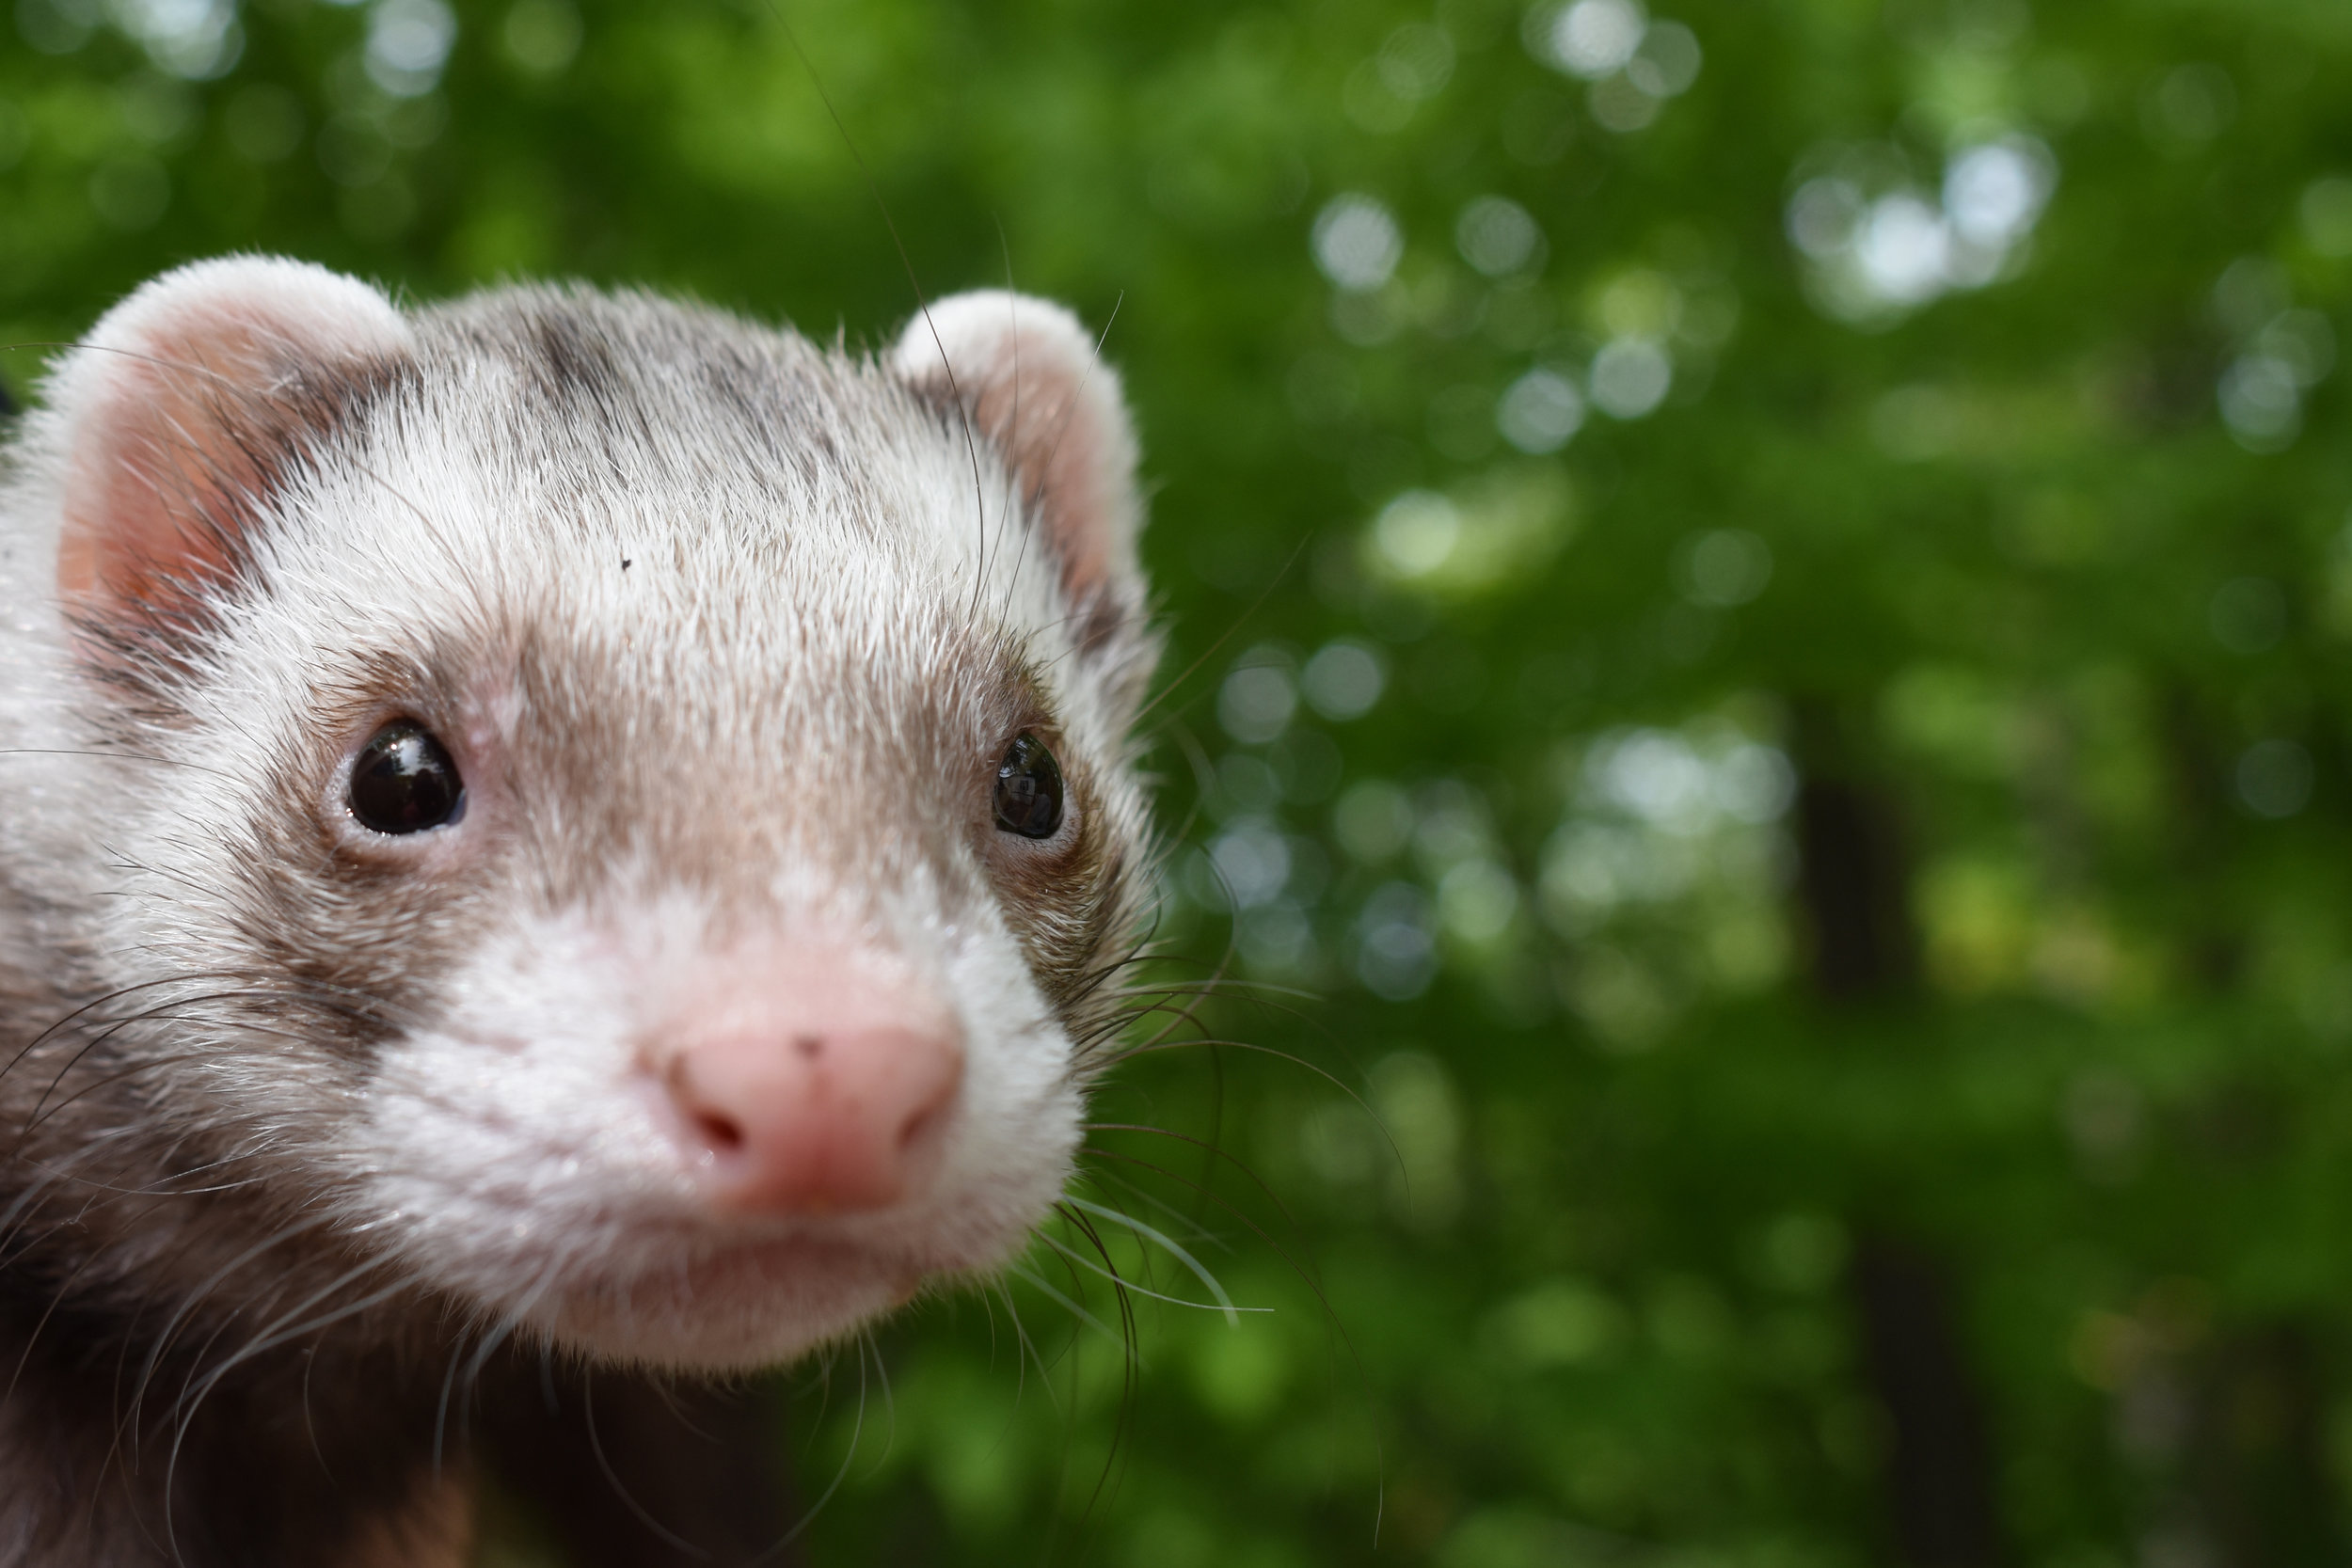 Sneaky Weasel hits the great outdoors in Eagle Lake, PA